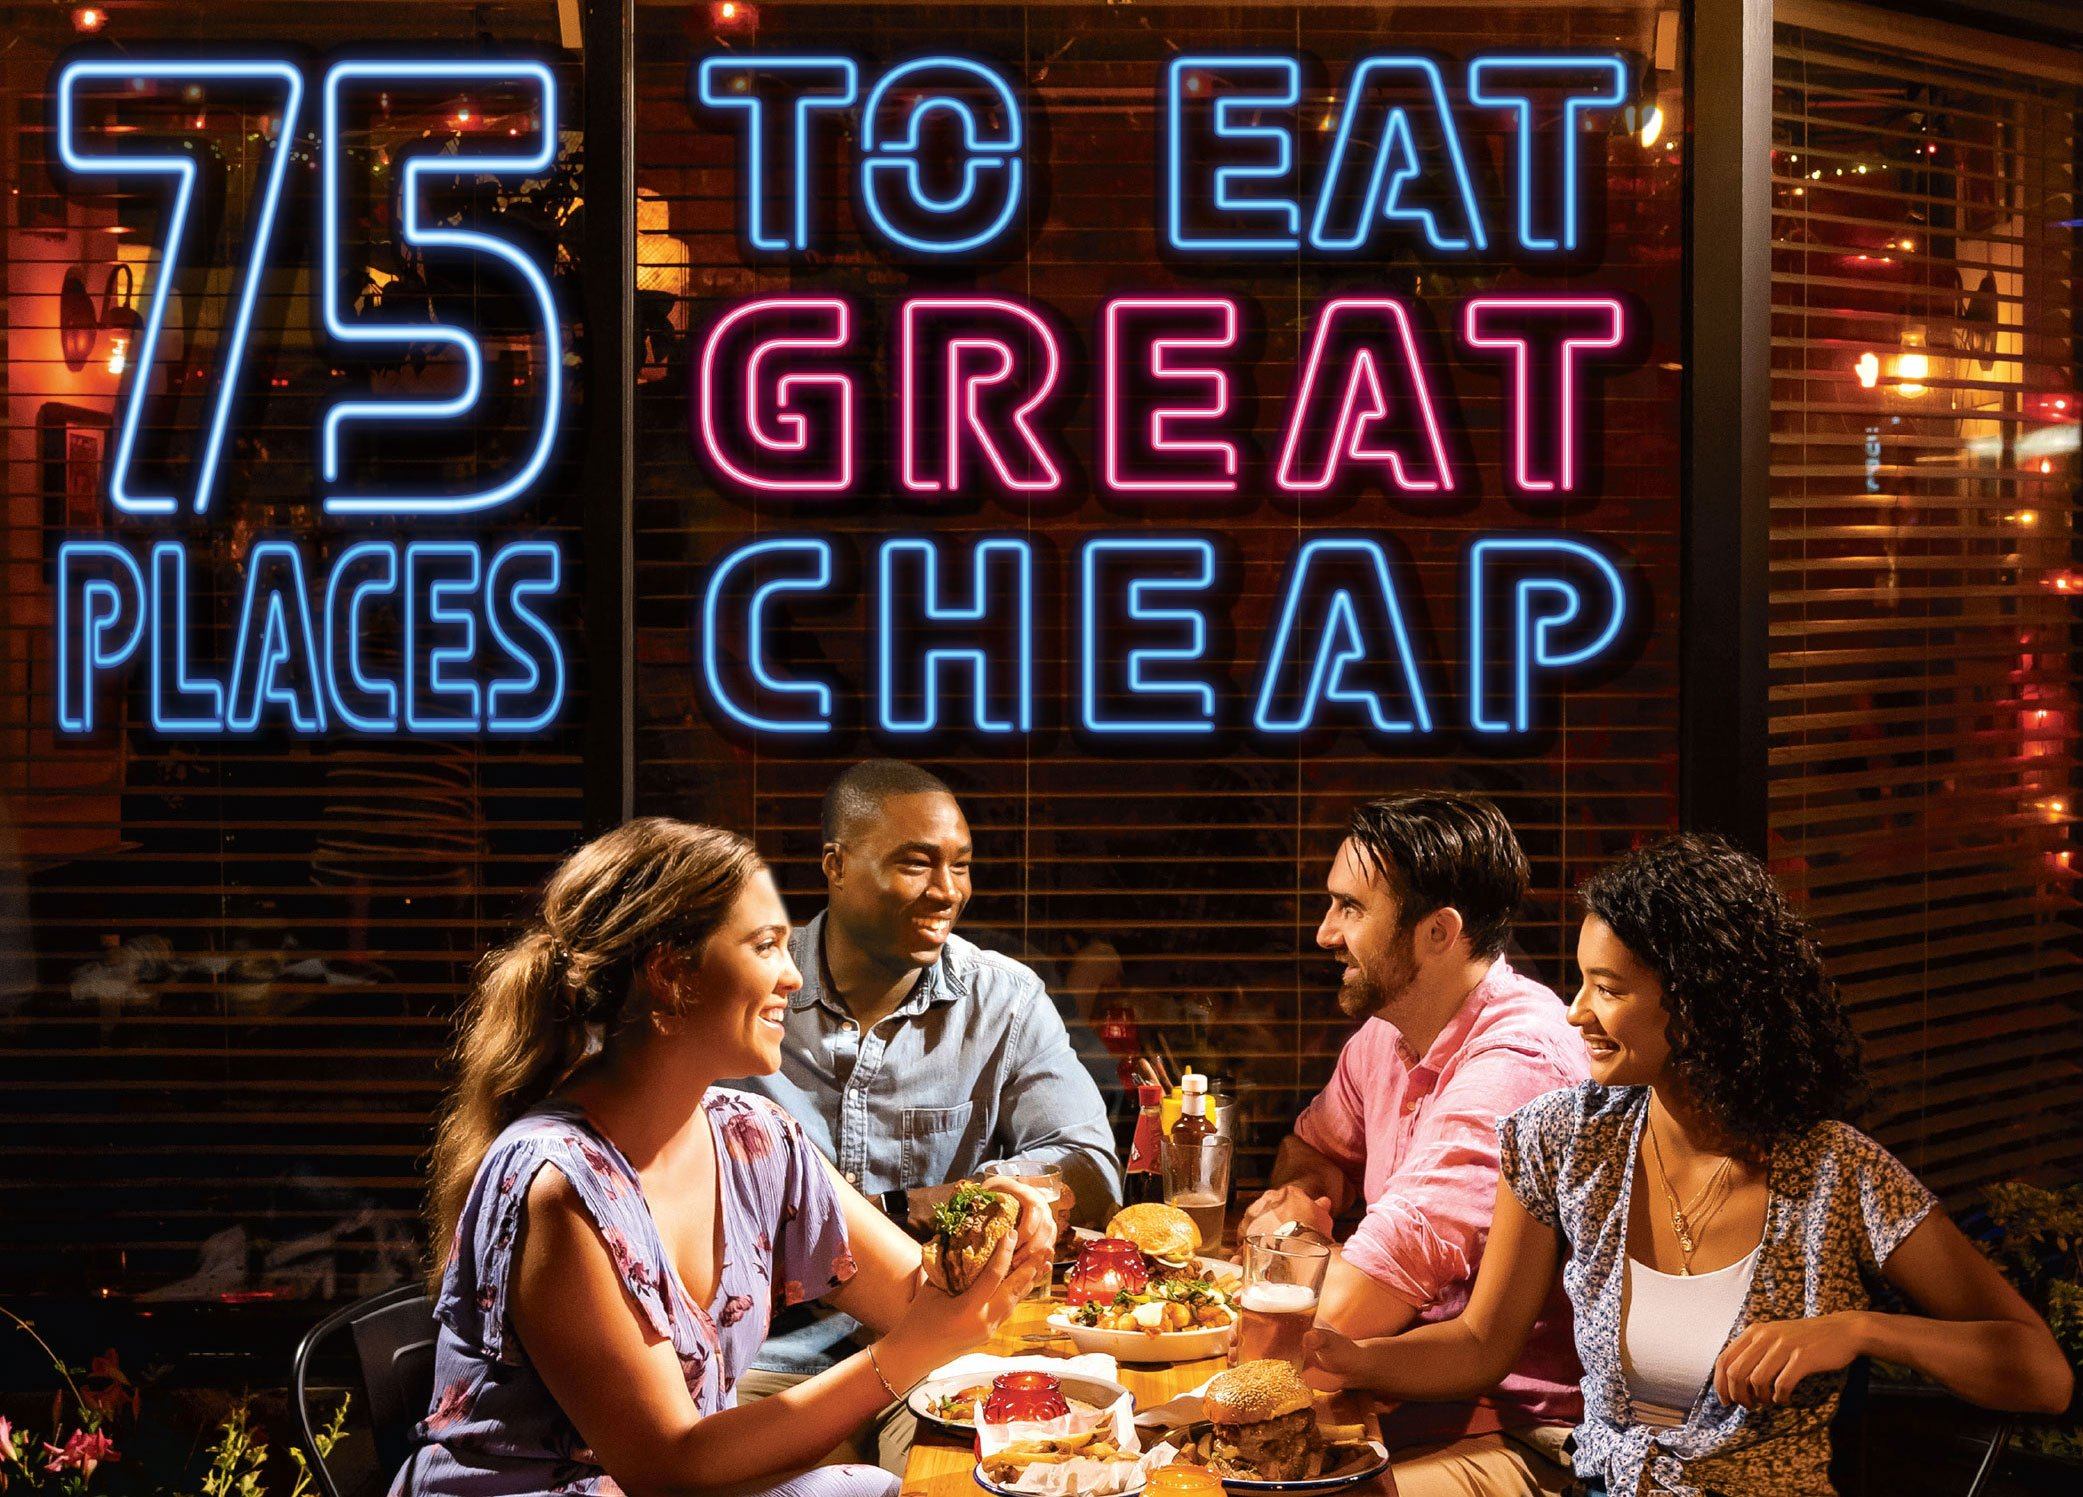 August 2019: 75 Places To Eat Great Cheap | Washingtonian (DC)